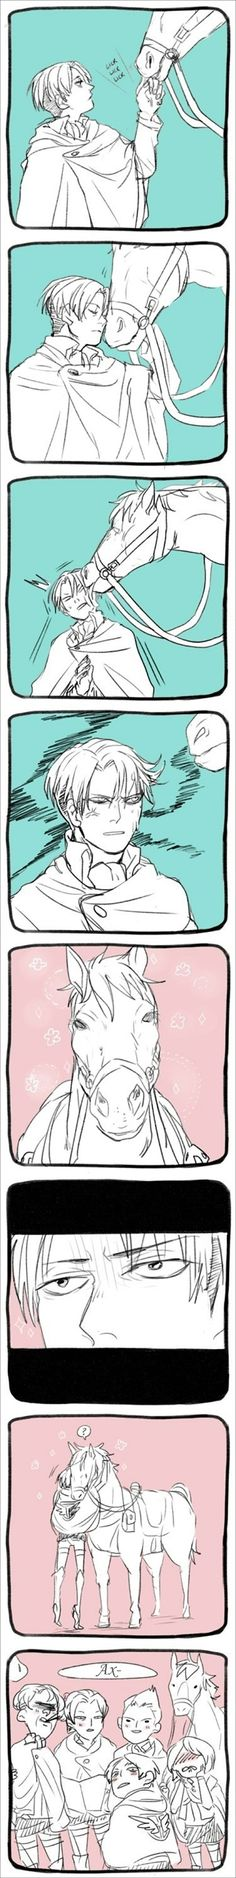 Shingeki no Kyojin - Levi - Love LOL I LIKE HOW LEVI POINTS HIS TOES TO REACH THE HORSE :3